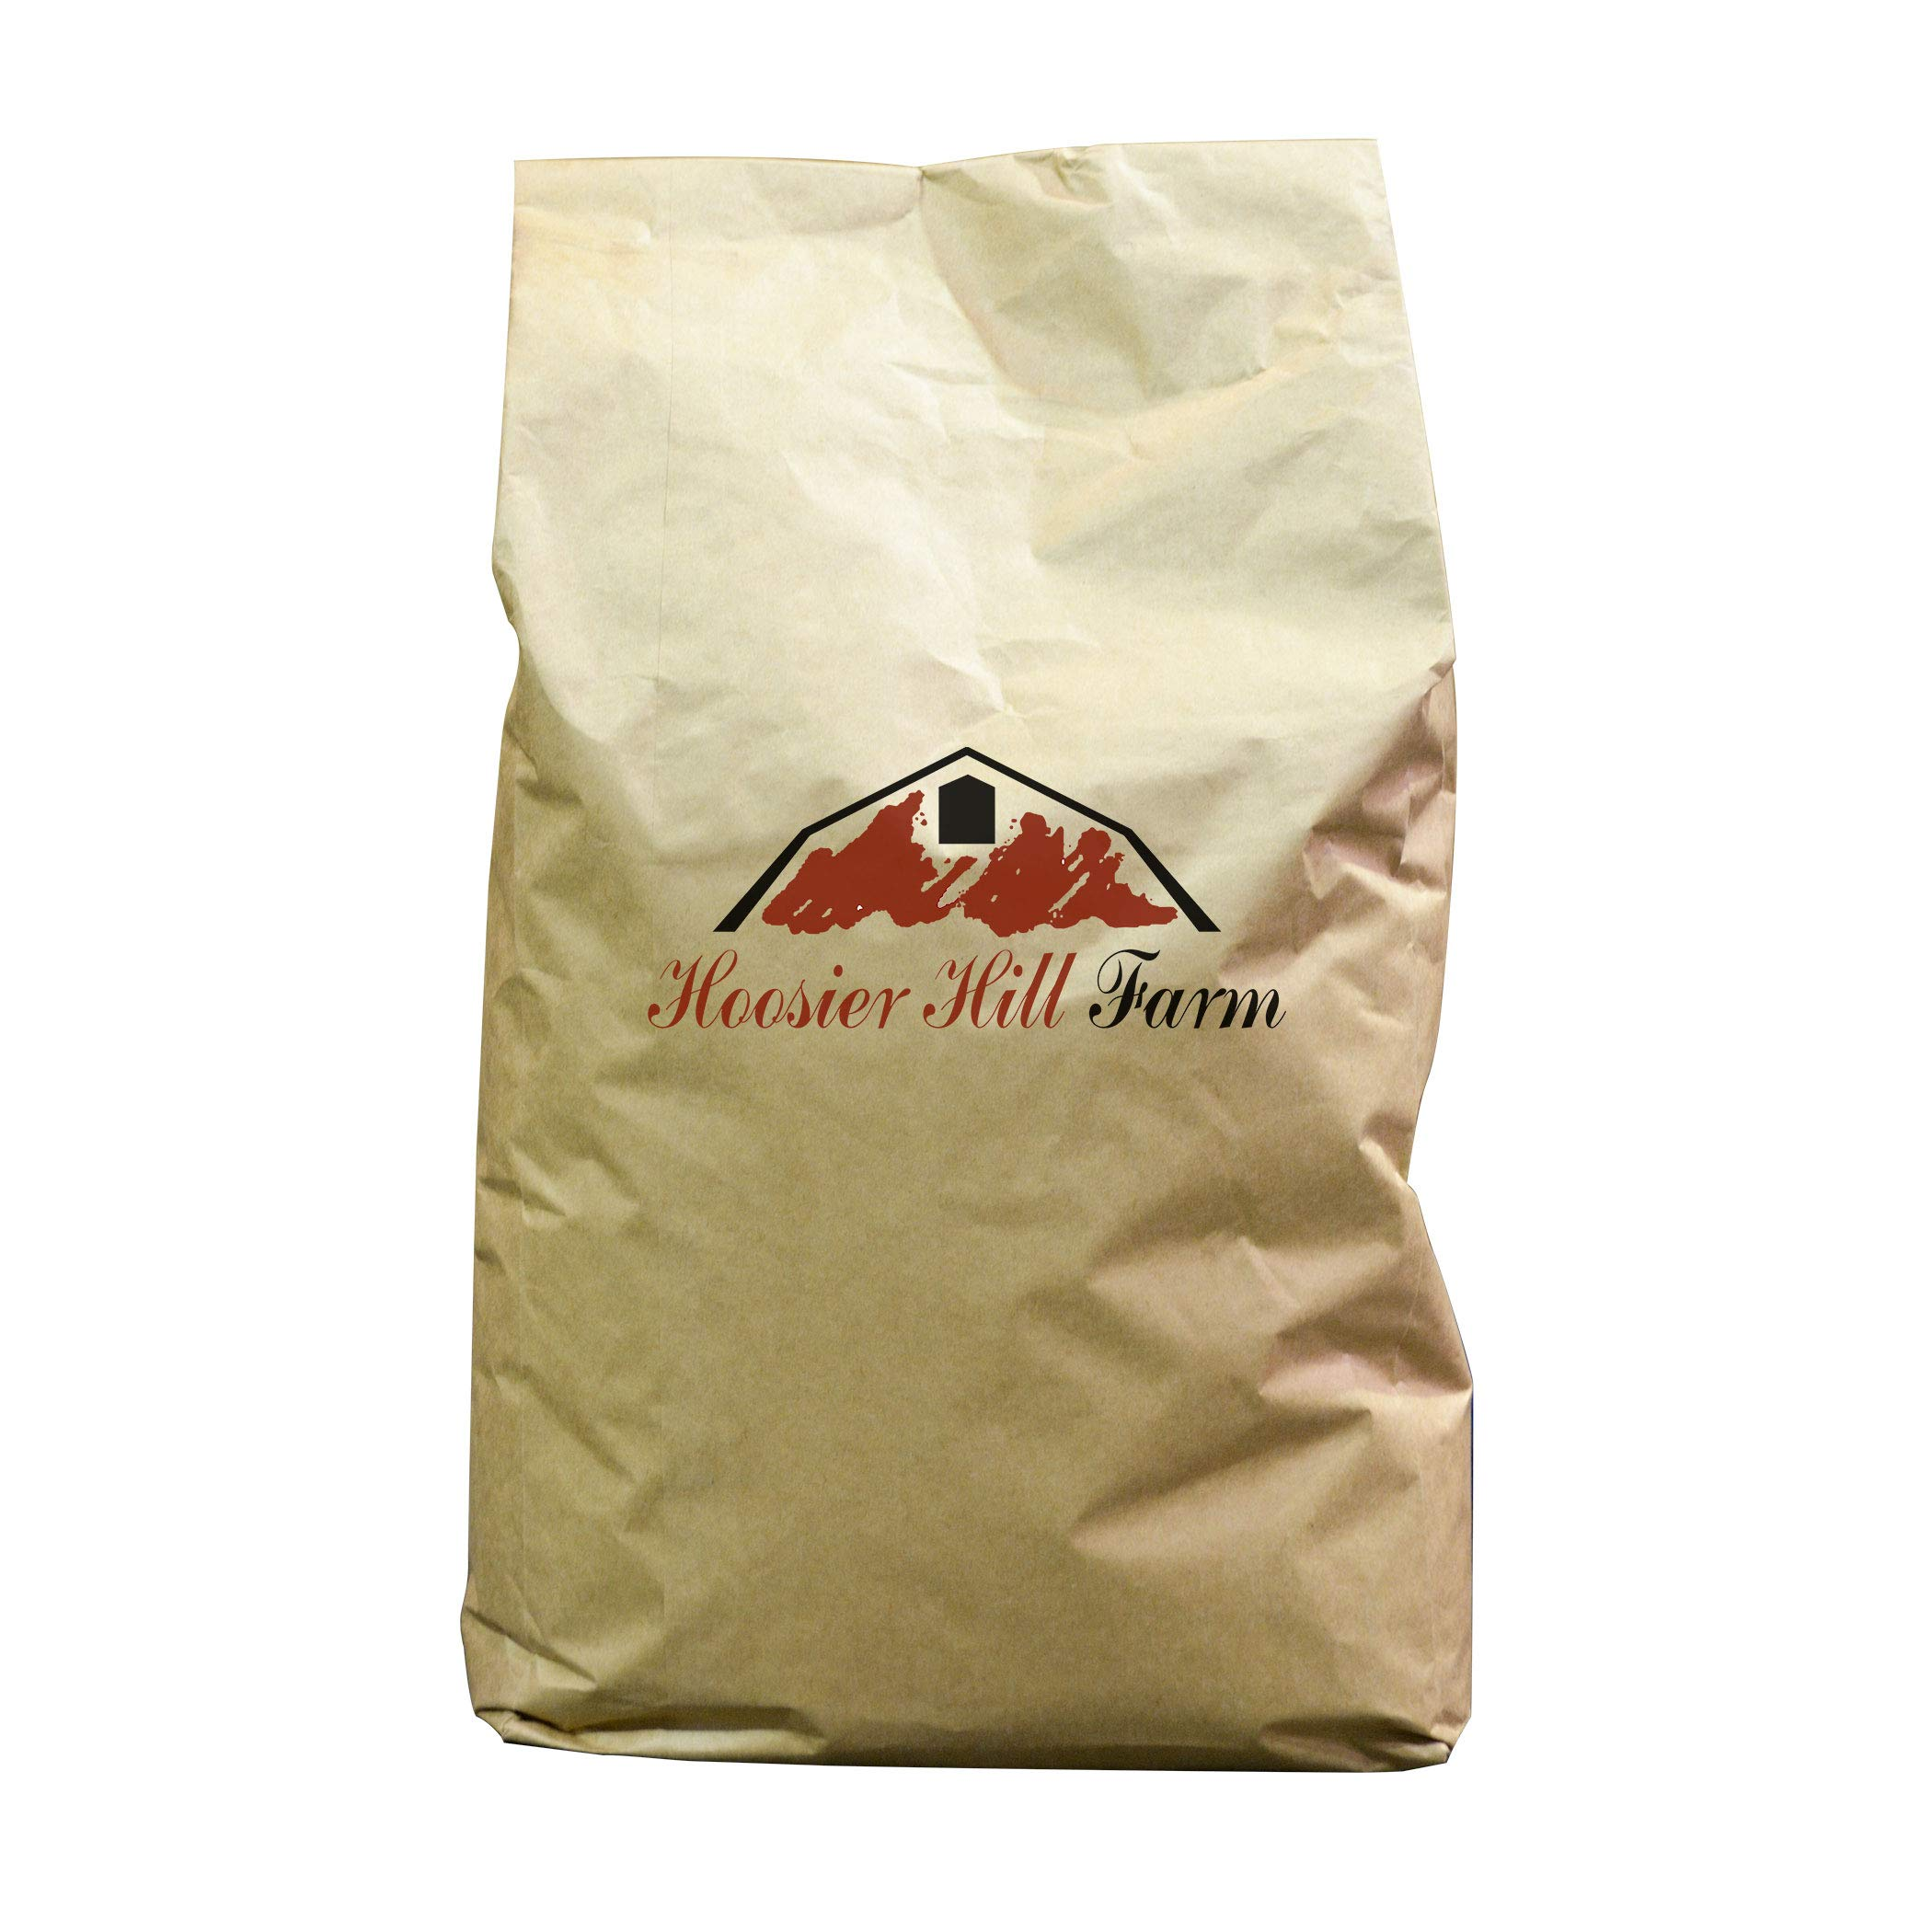 Hoosier Hill Farm Original Cheddar Cheese Powder, 50 Lbs Bag, Bulk Bag